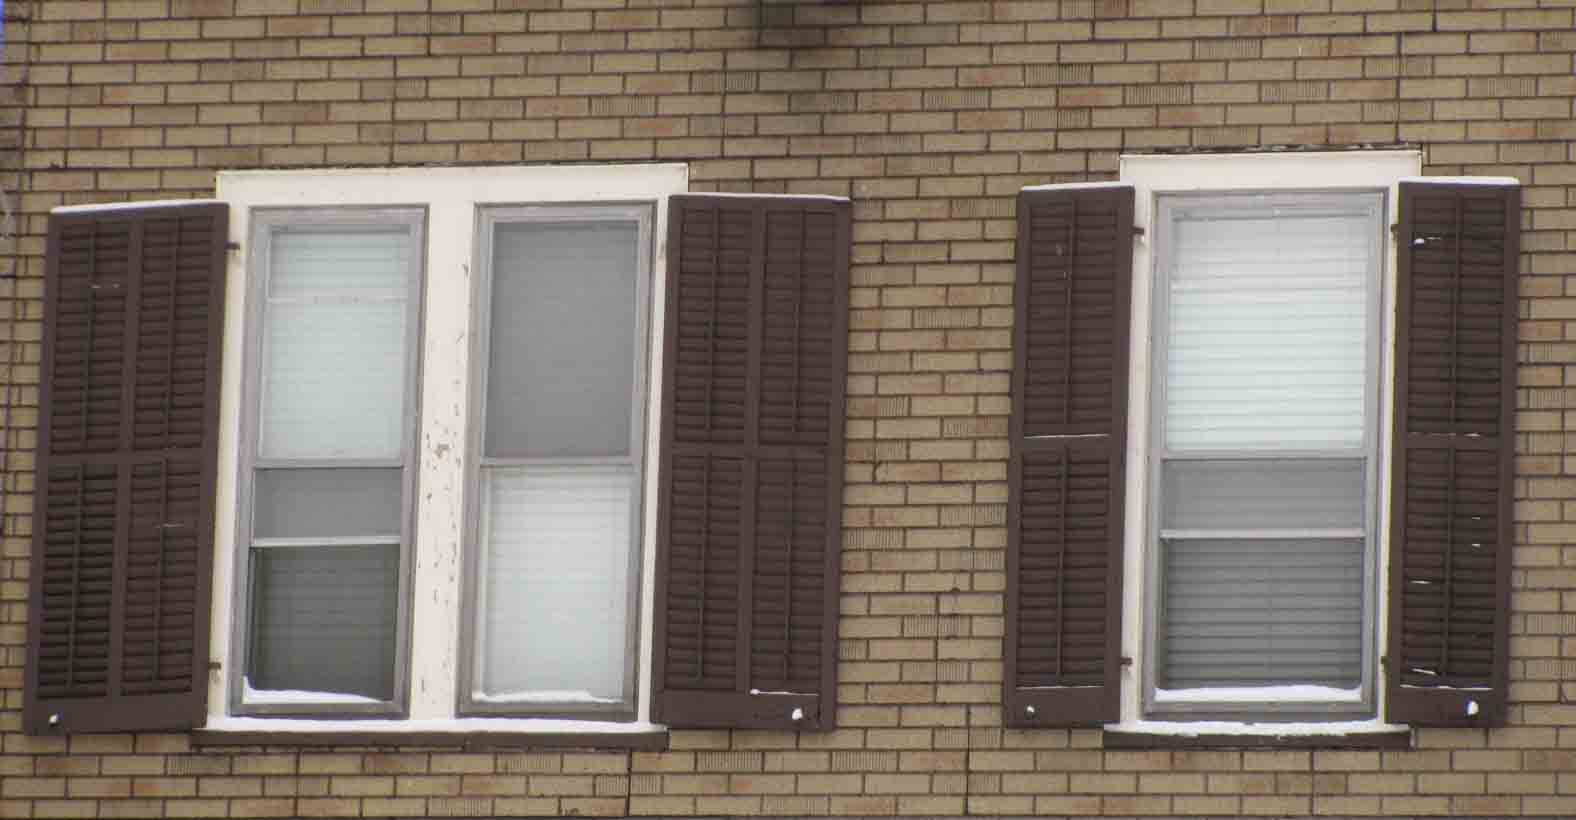 All about exterior window shutters oldhouseguy blog - Types shutters consider windows ...